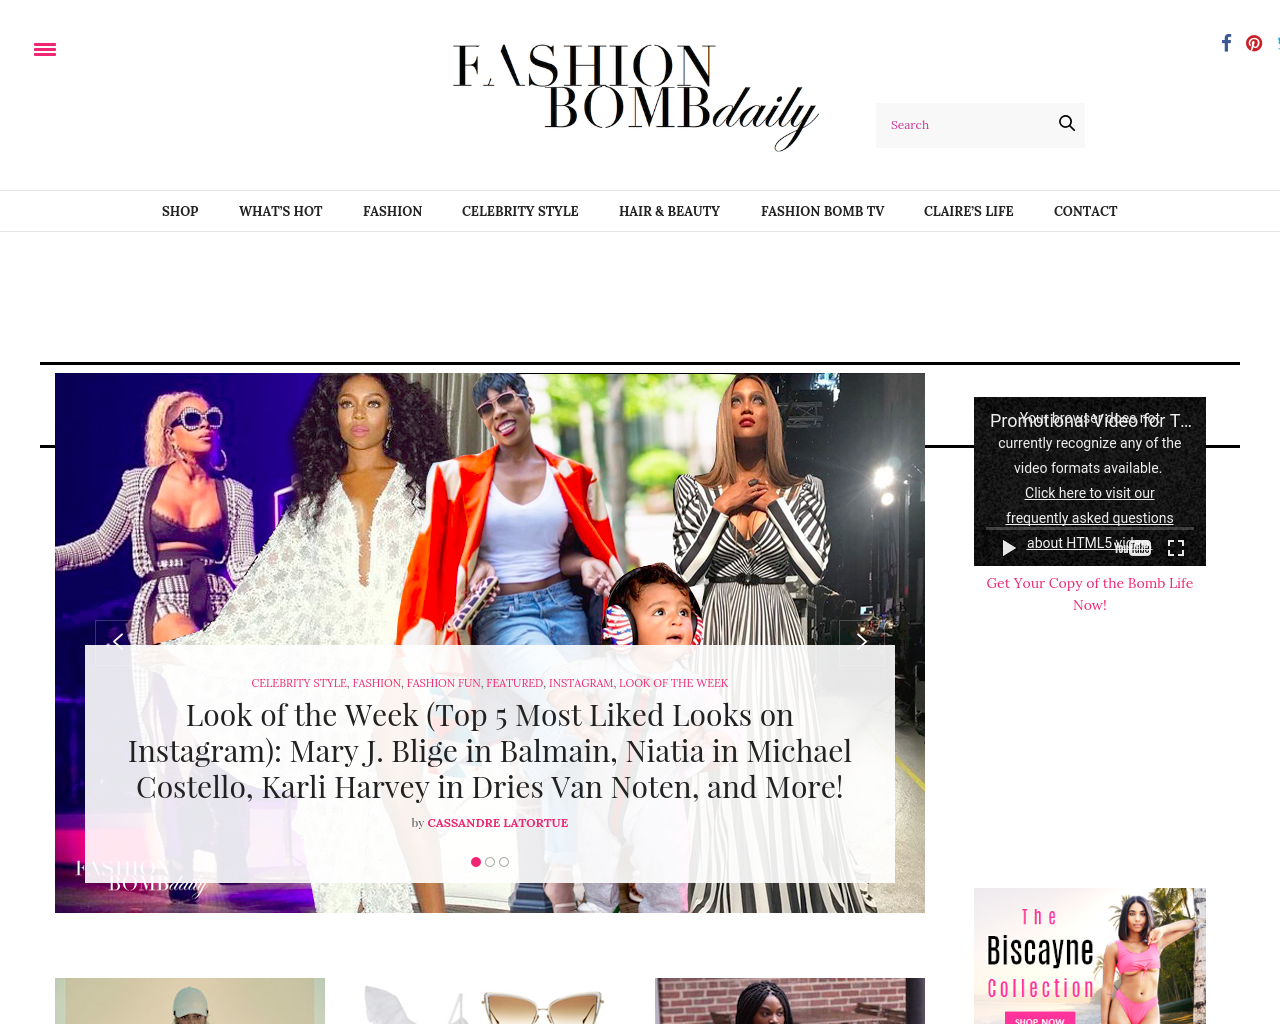 Fashionbombdaily-Advertising-Reviews-Pricing